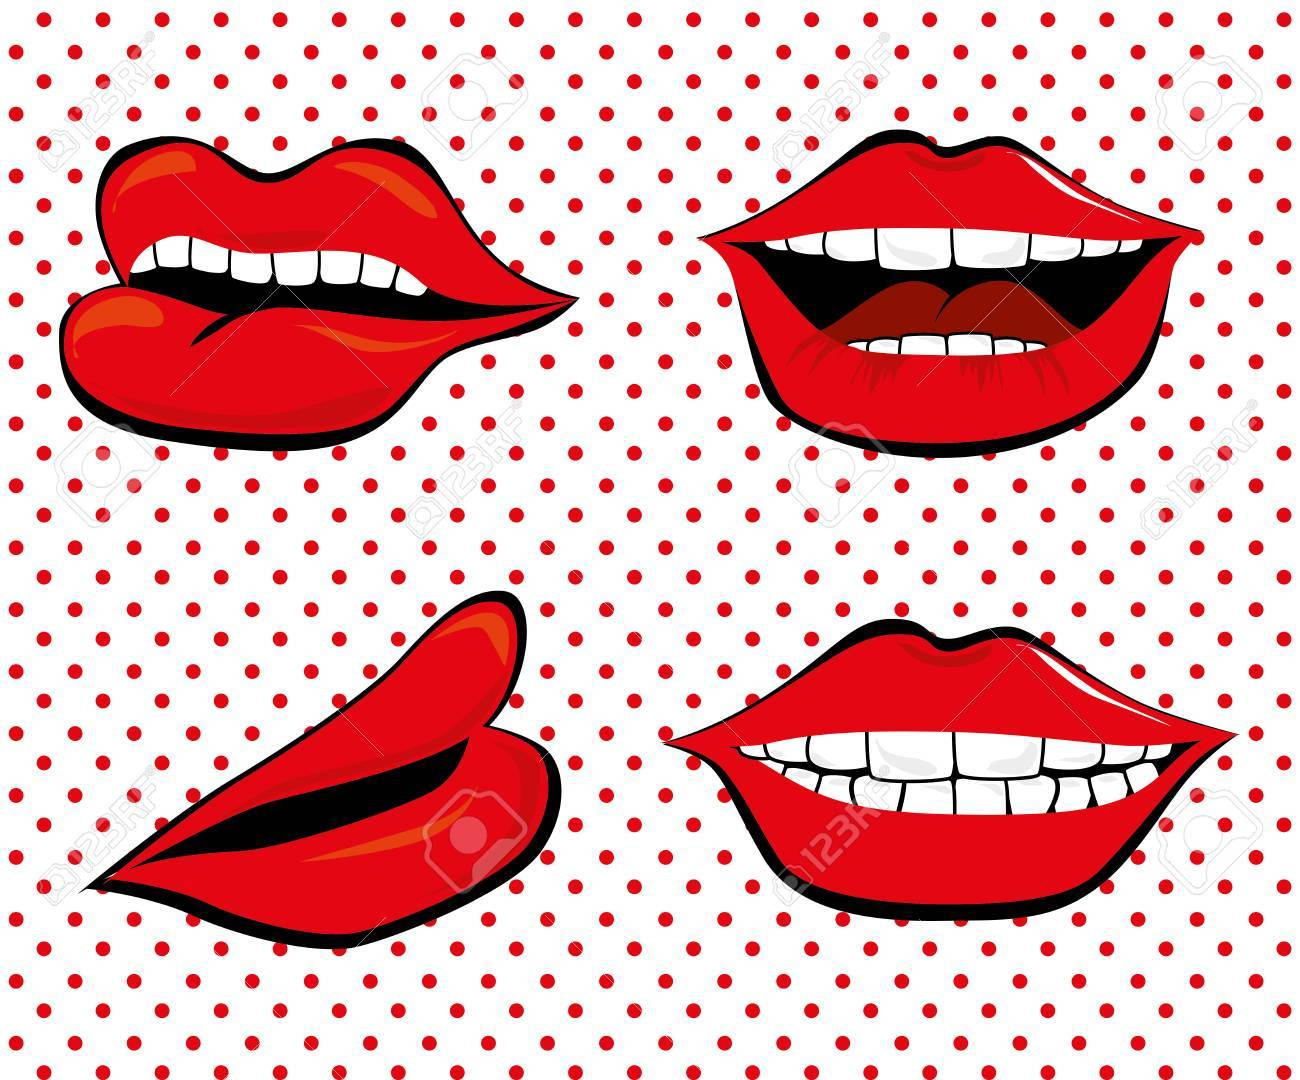 pop art   over dotted   background vector illustration Stock Vector - 26379681